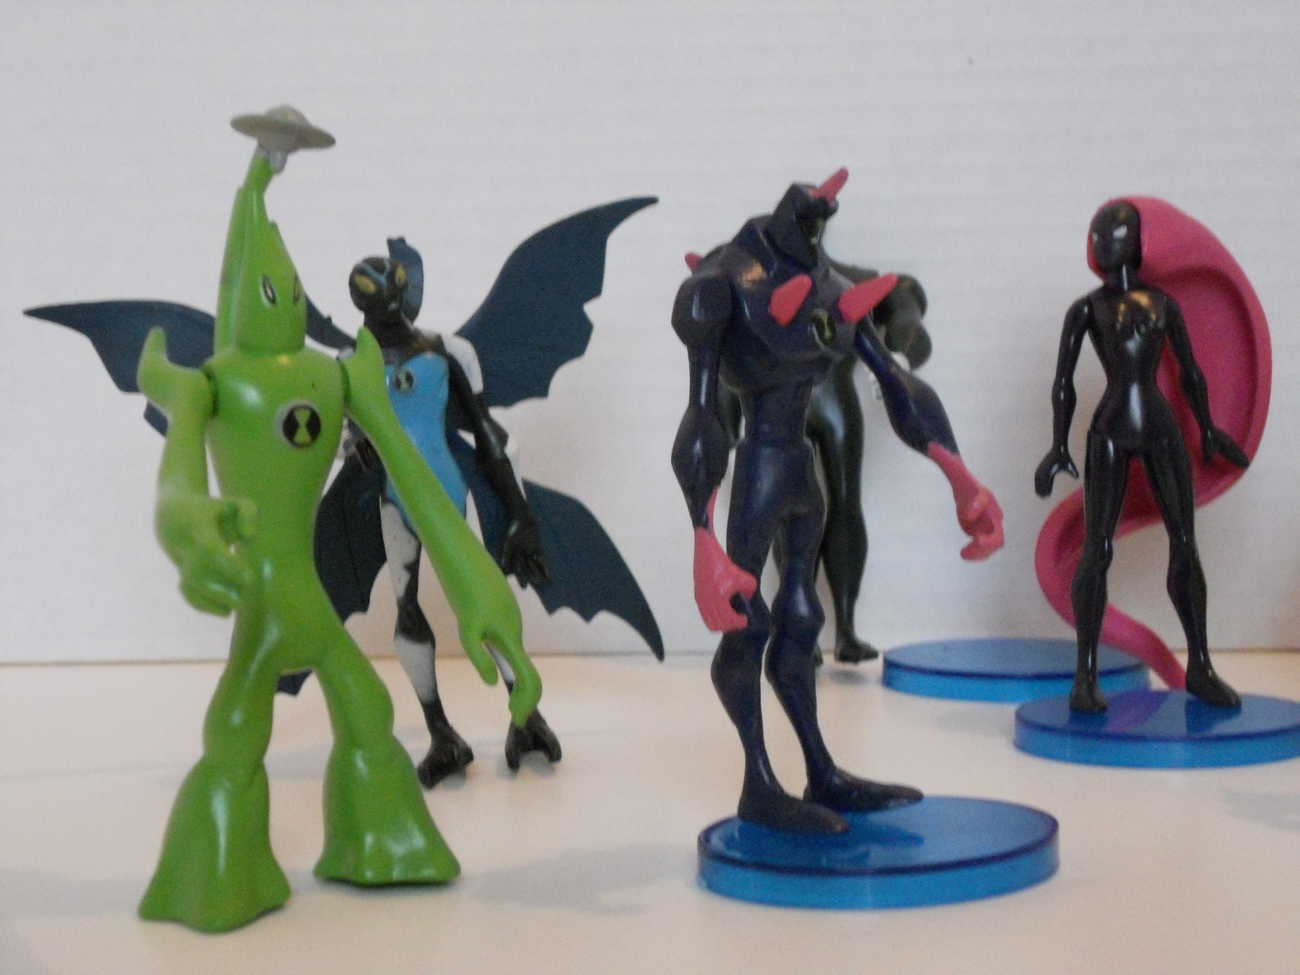 10 Ben 10 Alien Force Action Figures